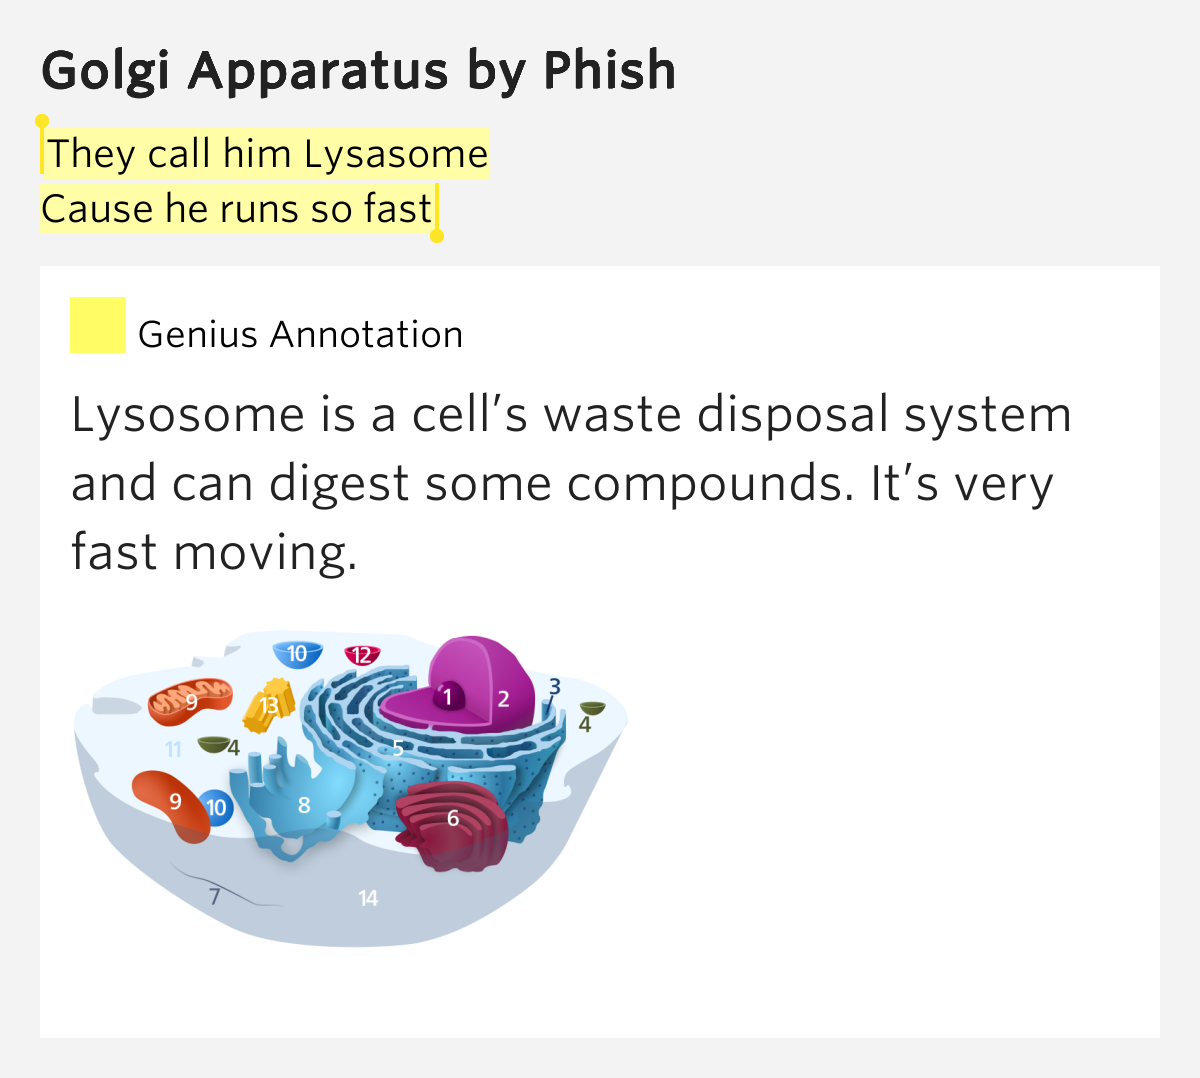 Golgi Apparatus Lyrics